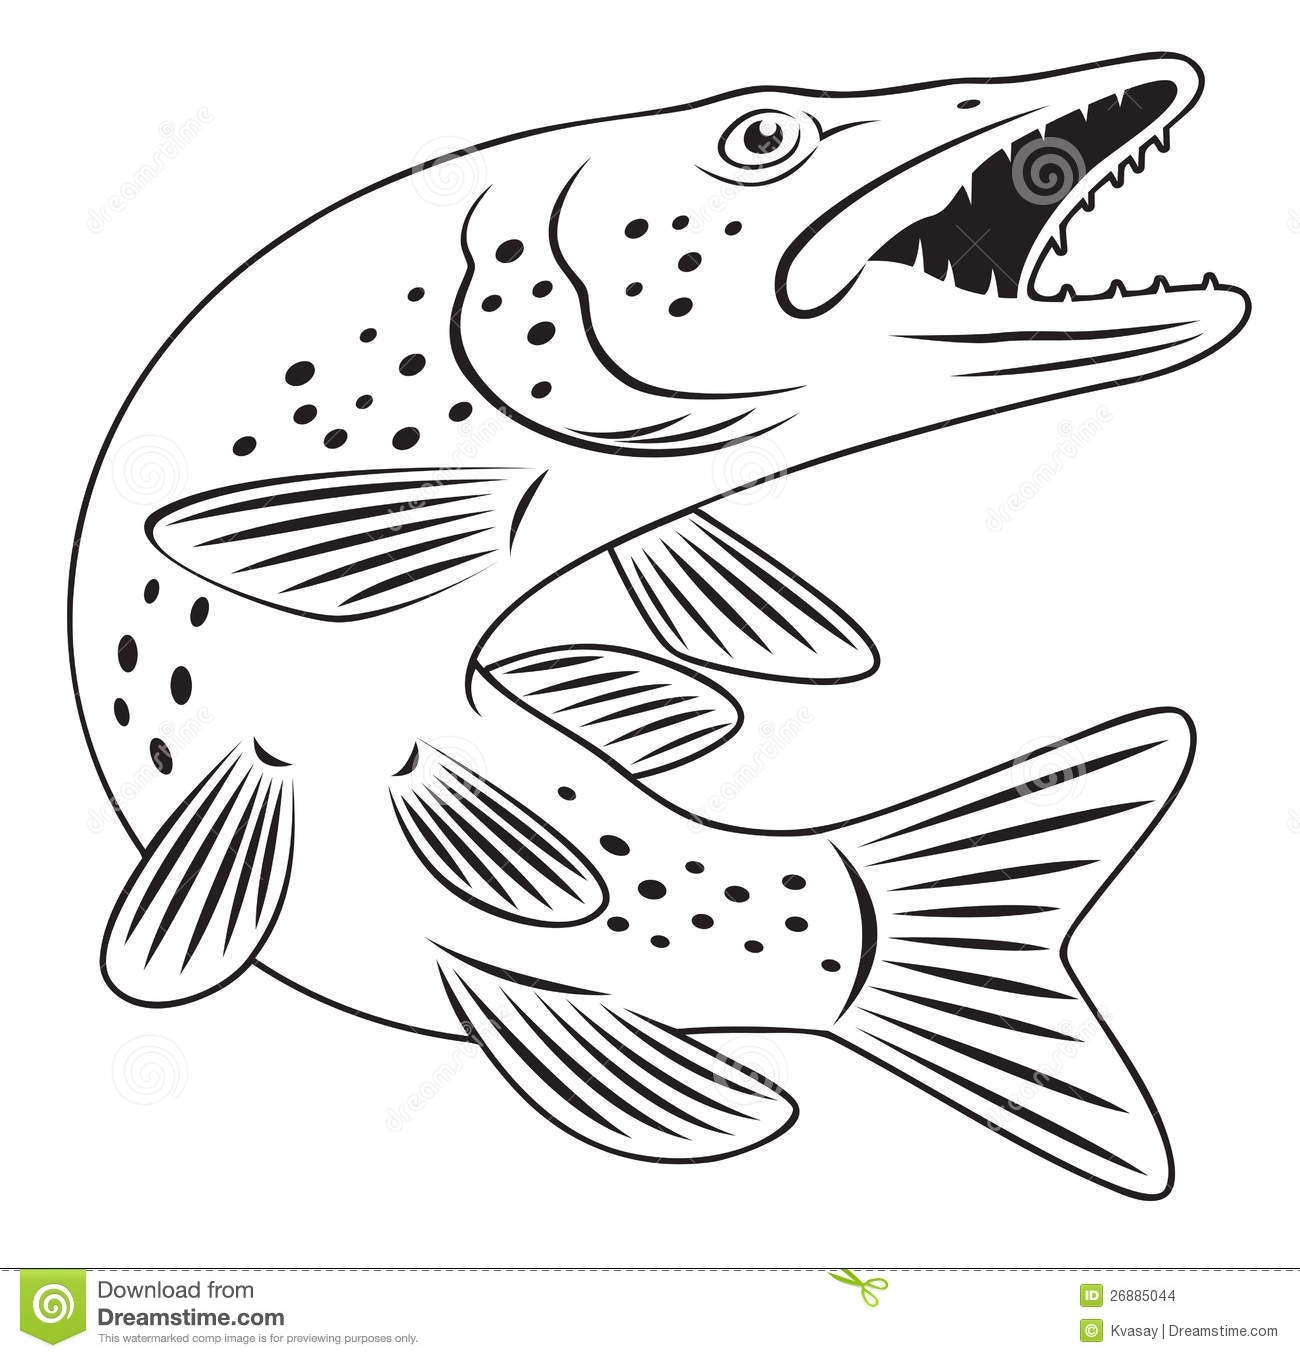 Walleye Coloring Pages  to Print 14n - Free Download